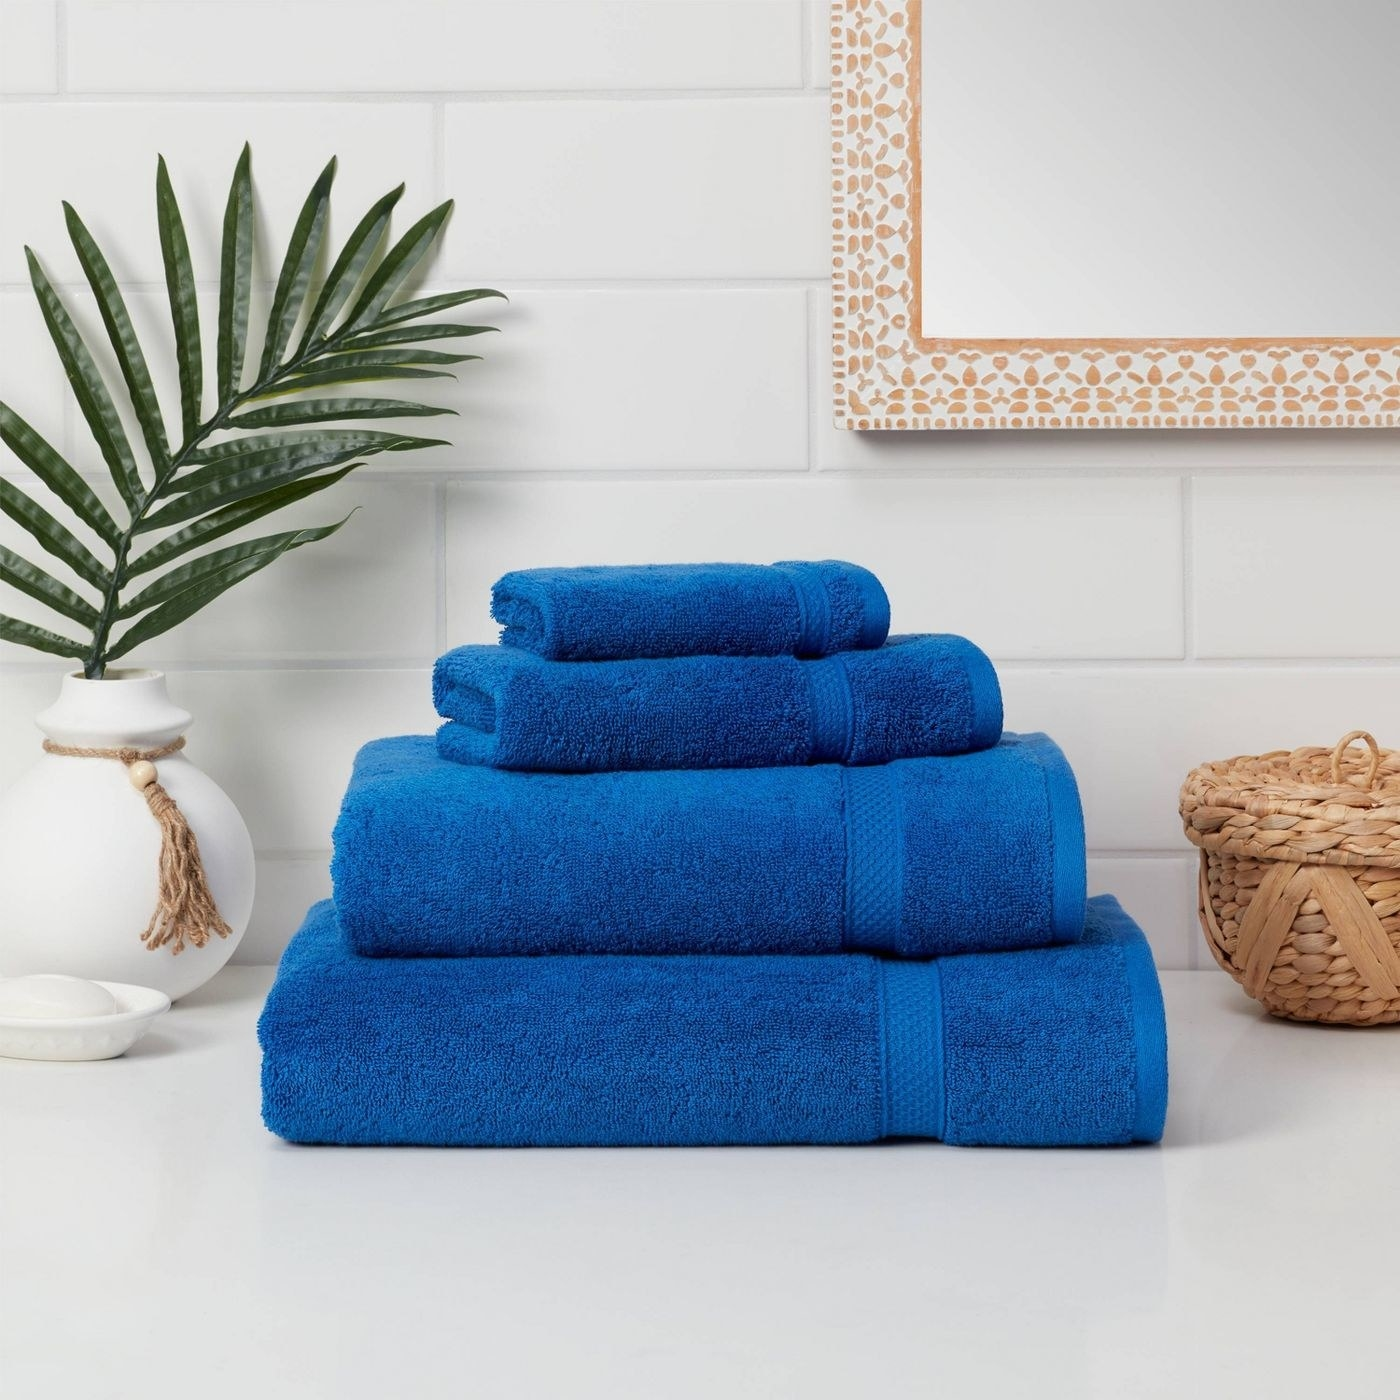 Blue towels in a home